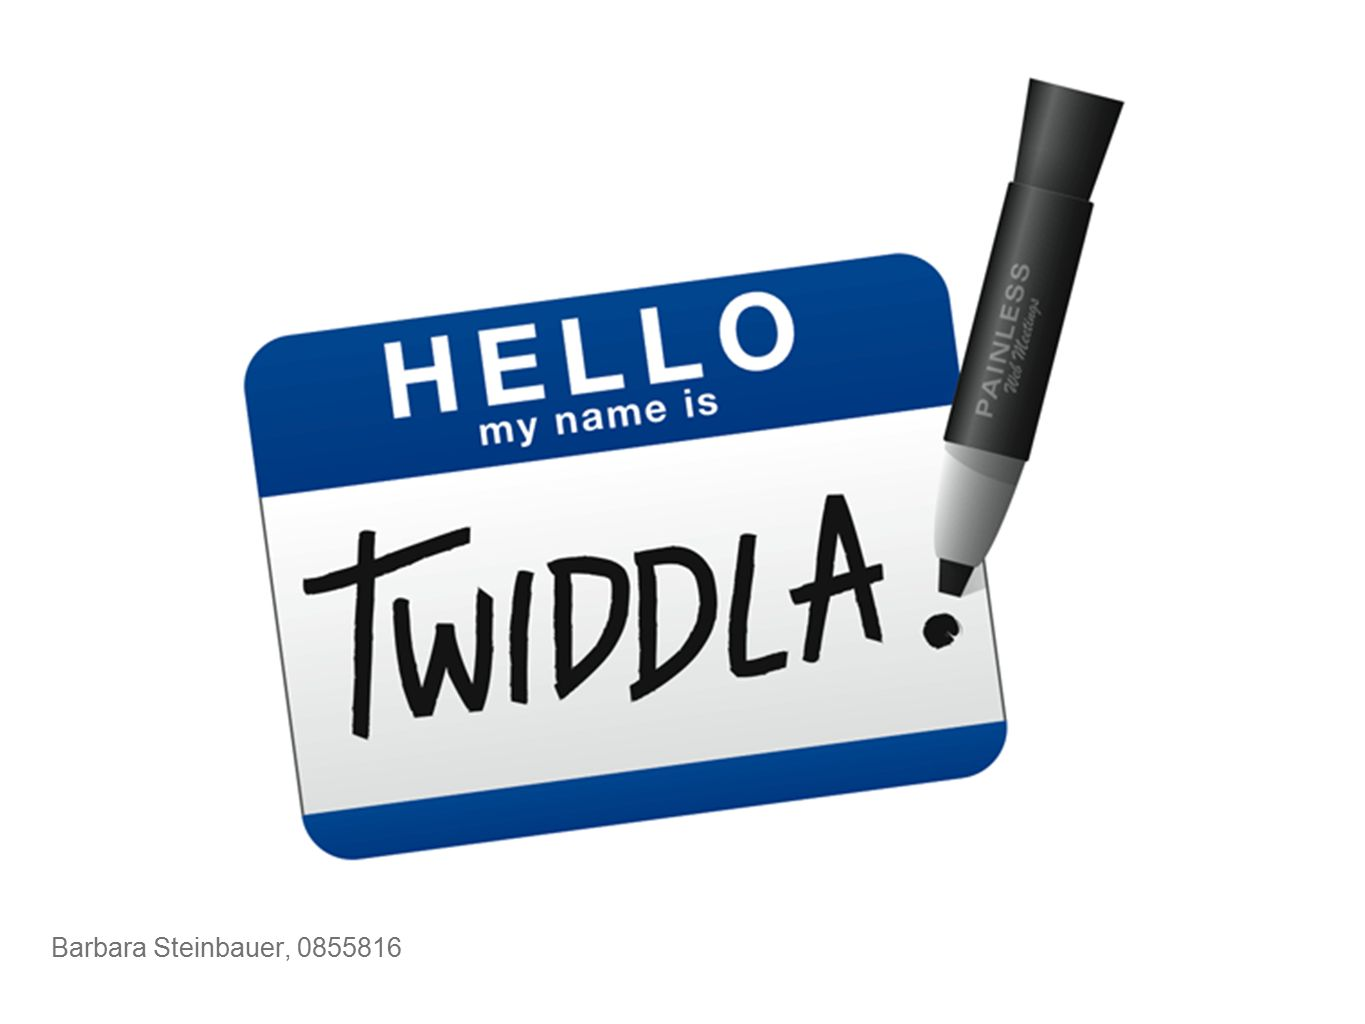 Online collaboration tool / Web-based meeting playground Was ist Twiddla?